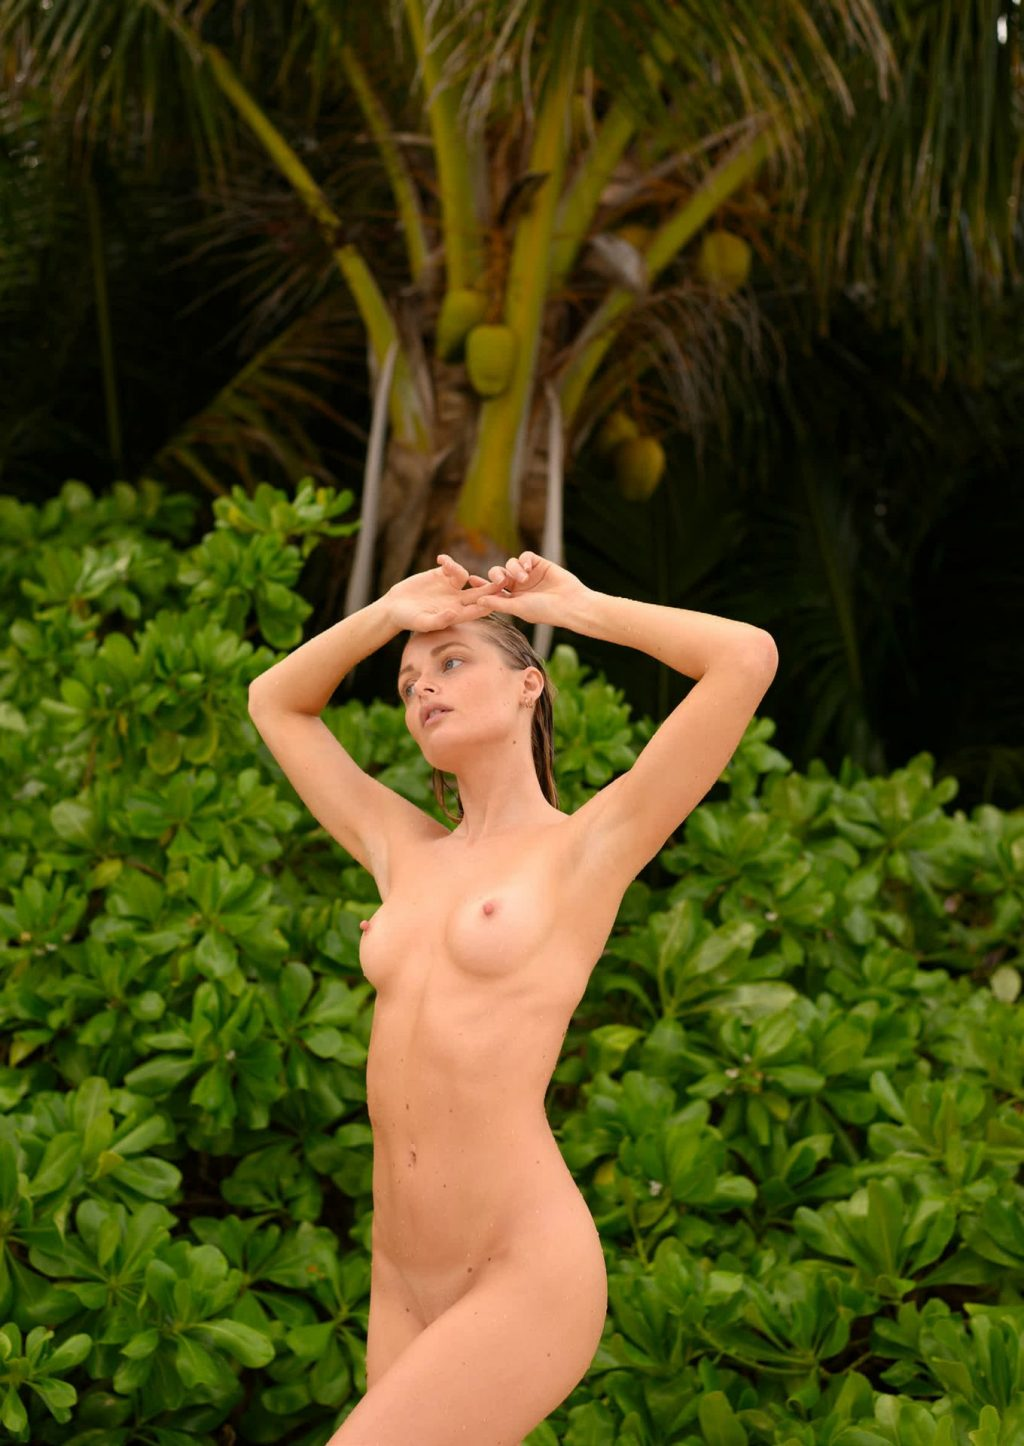 Nude Pics of Megan Samperi, Nice Body